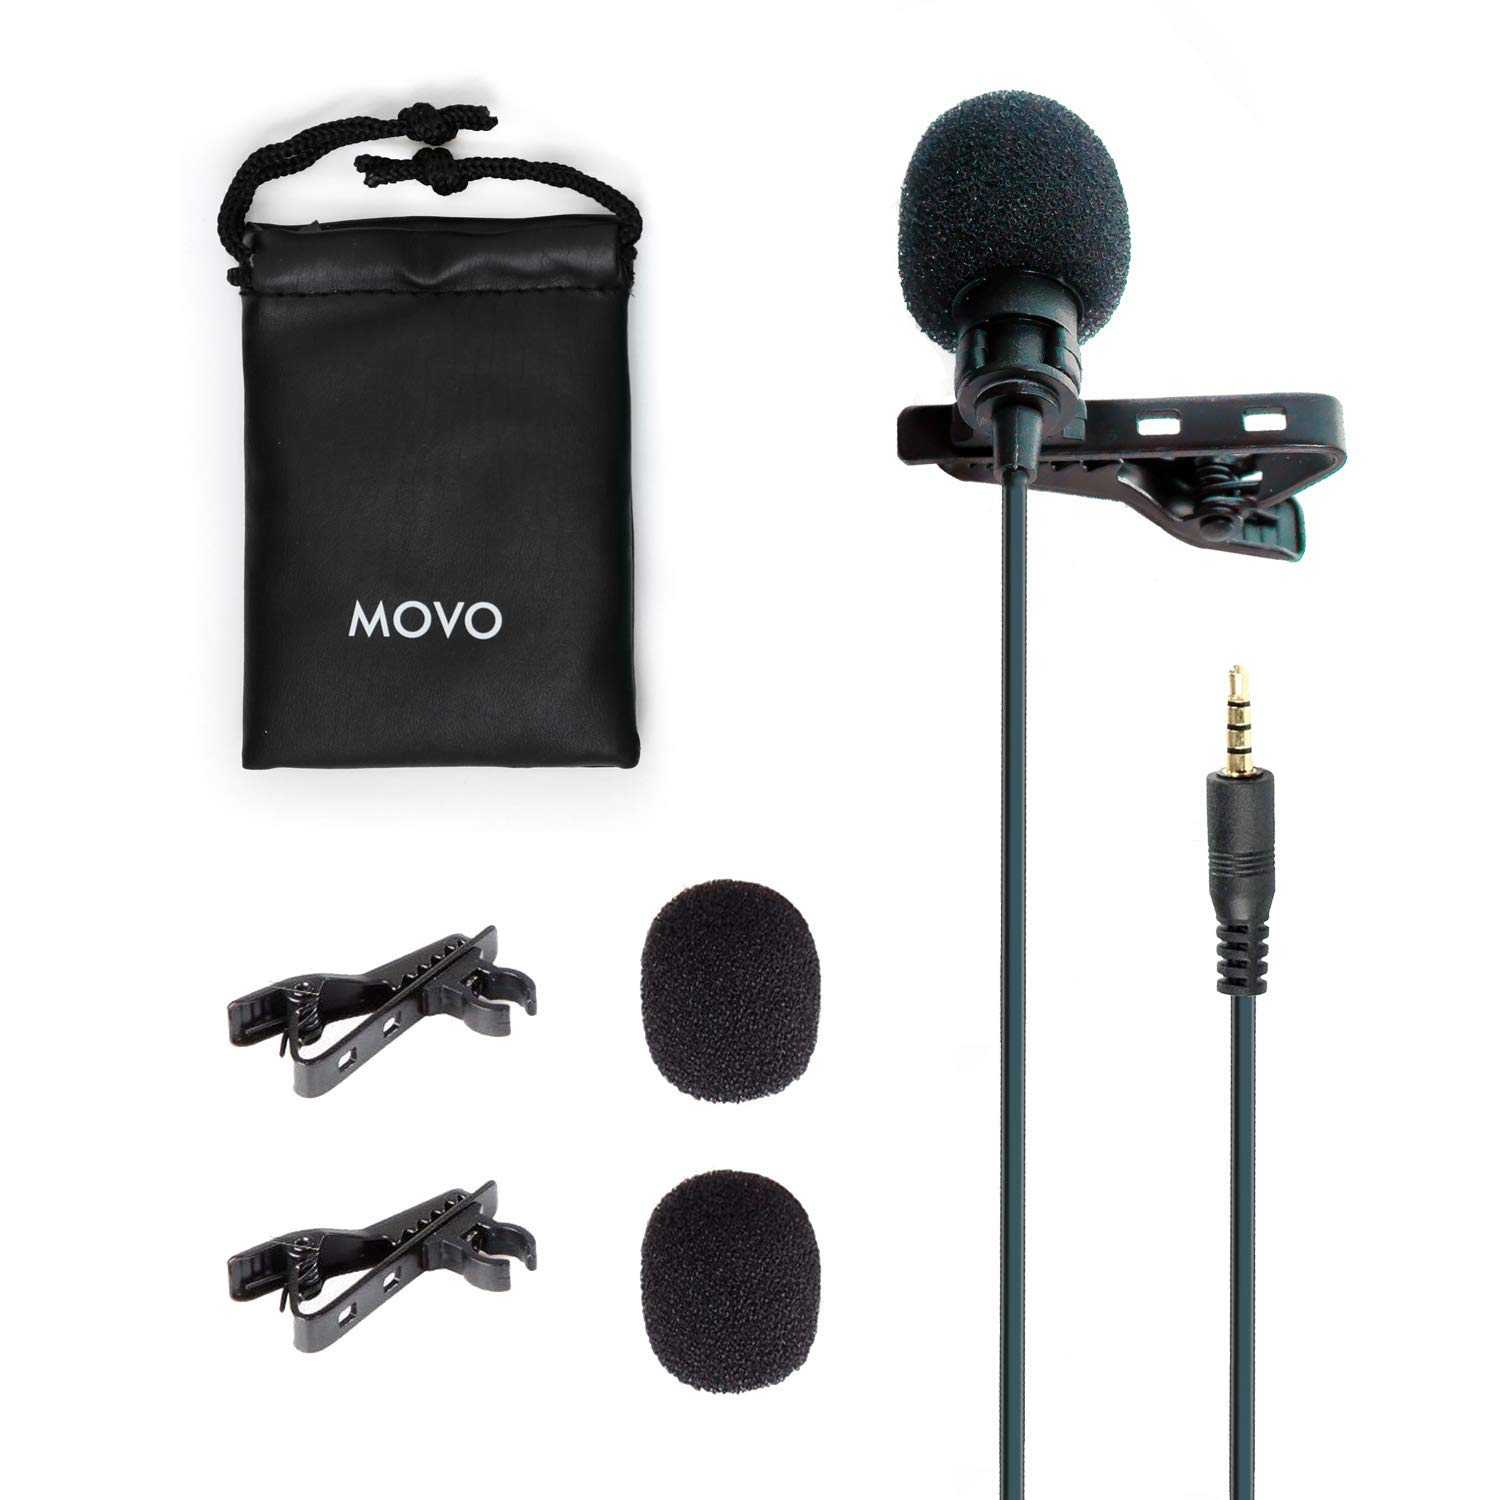 Movo PM10 Professional Lavalier Lapel Clip-on Omnidirectional Microphone for iOS iPhone, iPad, iPod Touch and Android Samsung Smartphone/Tablet for Recording Podcast, Vlog, Interview, YouTube, ASMR by Movo